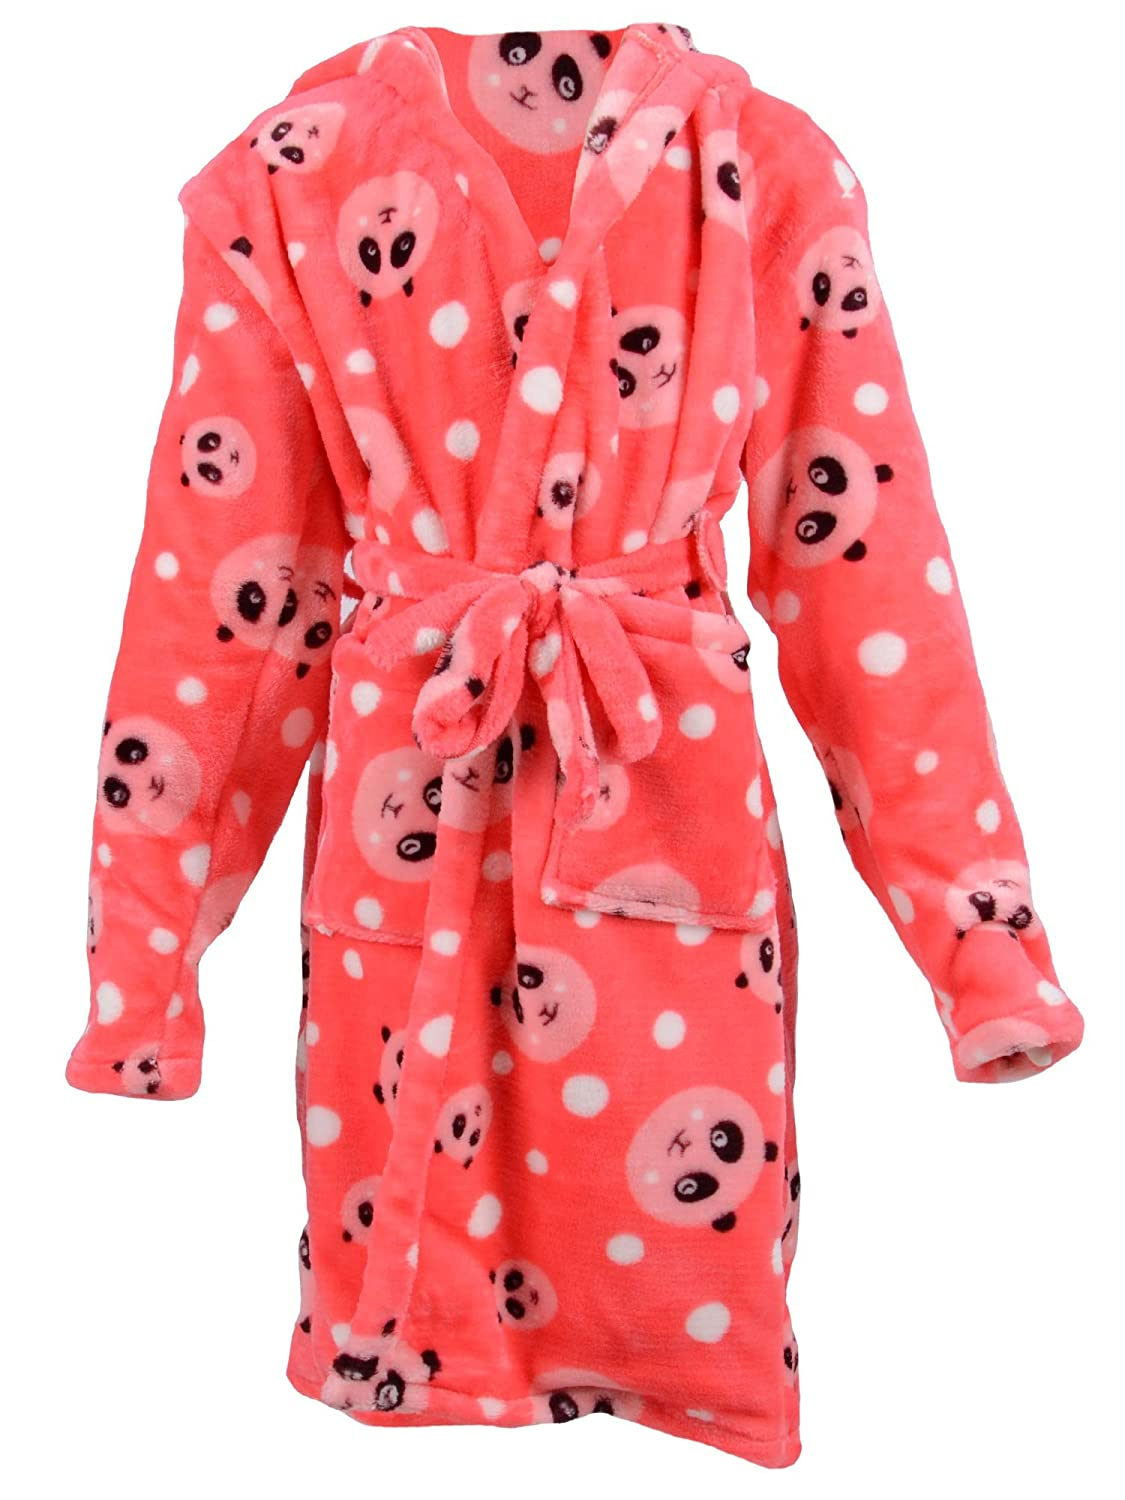 Simplicity Kids Boys Girls Bath Robe and Cover up GP13110095